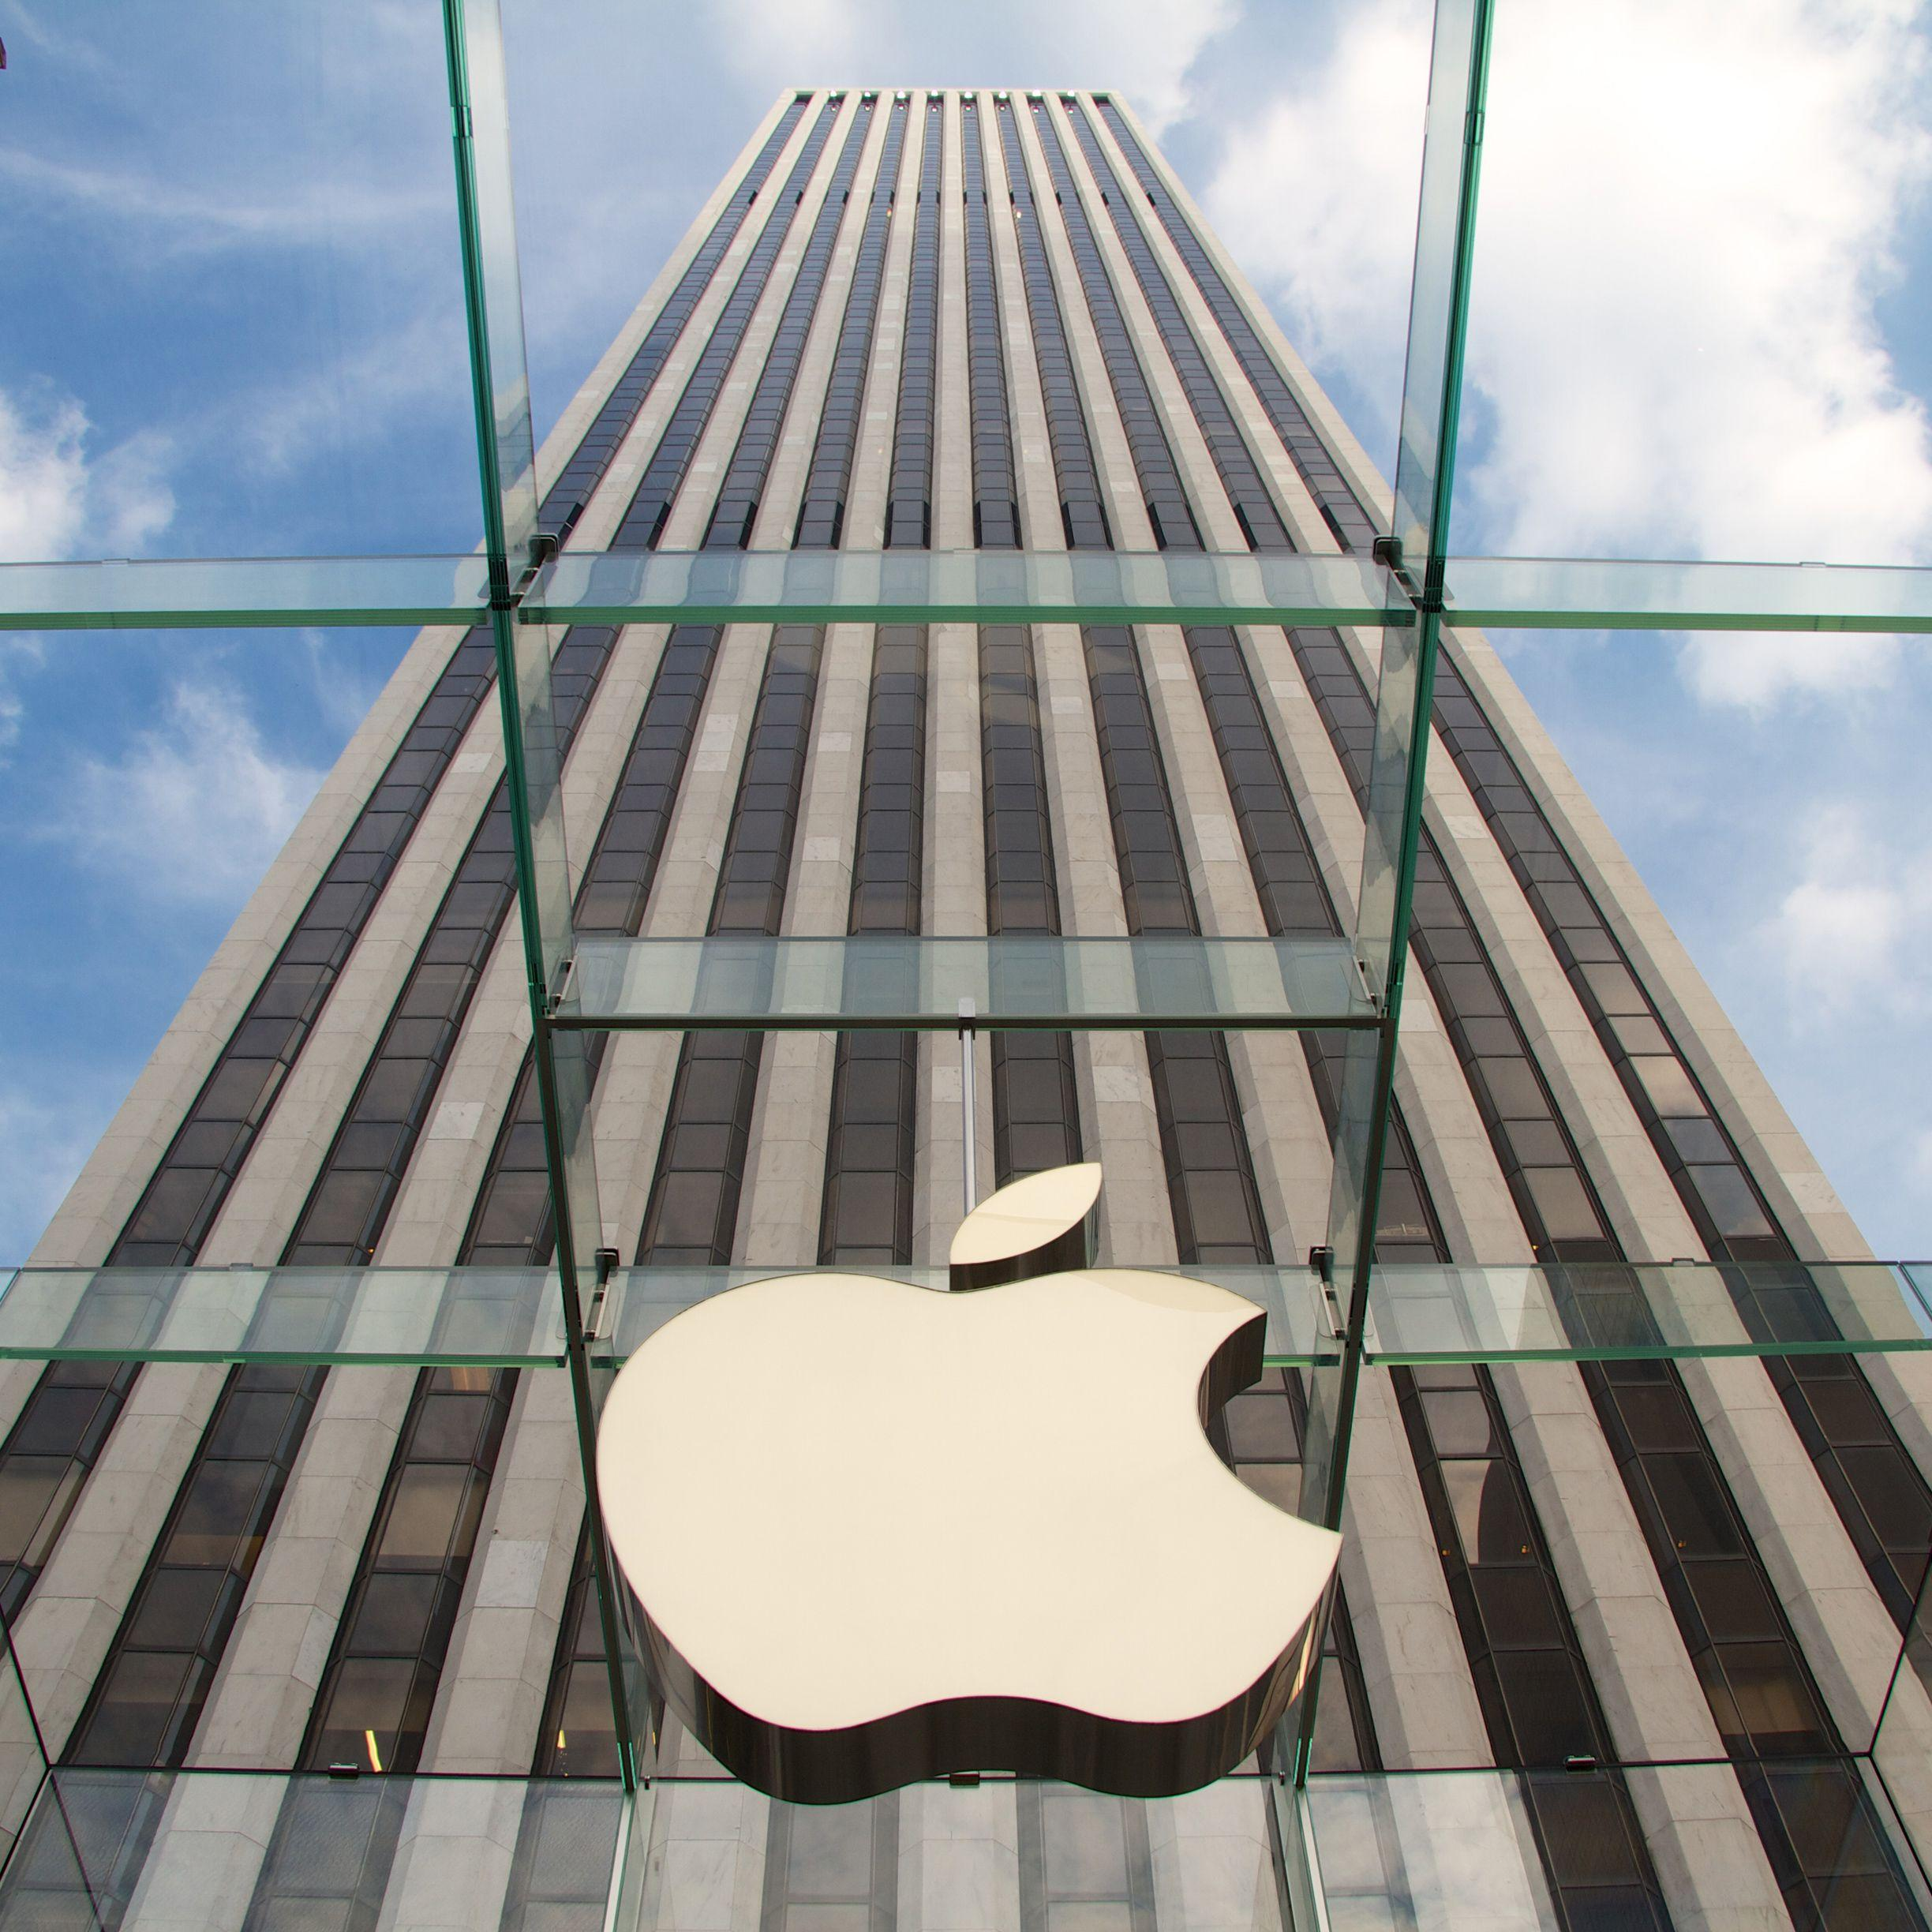 10 Stunning Apple Stores Images as iPad Wallpaper - Apple Gazette